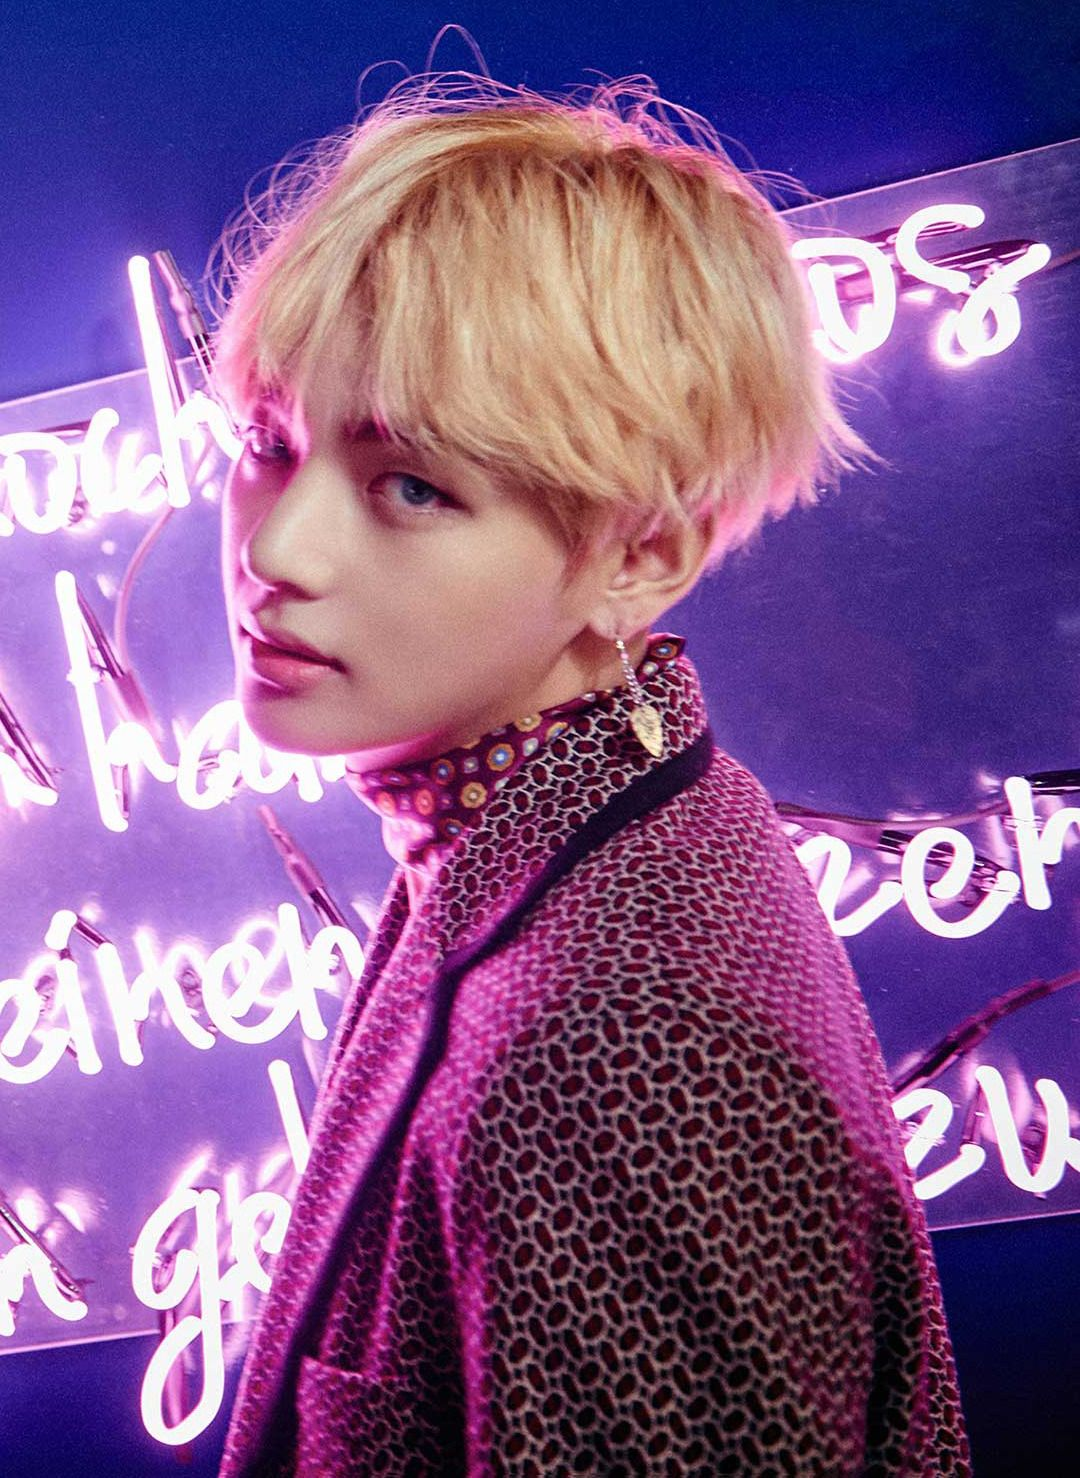 YOU THE ONLY ONE EVER Taehyung Pinterest BTS Kpop